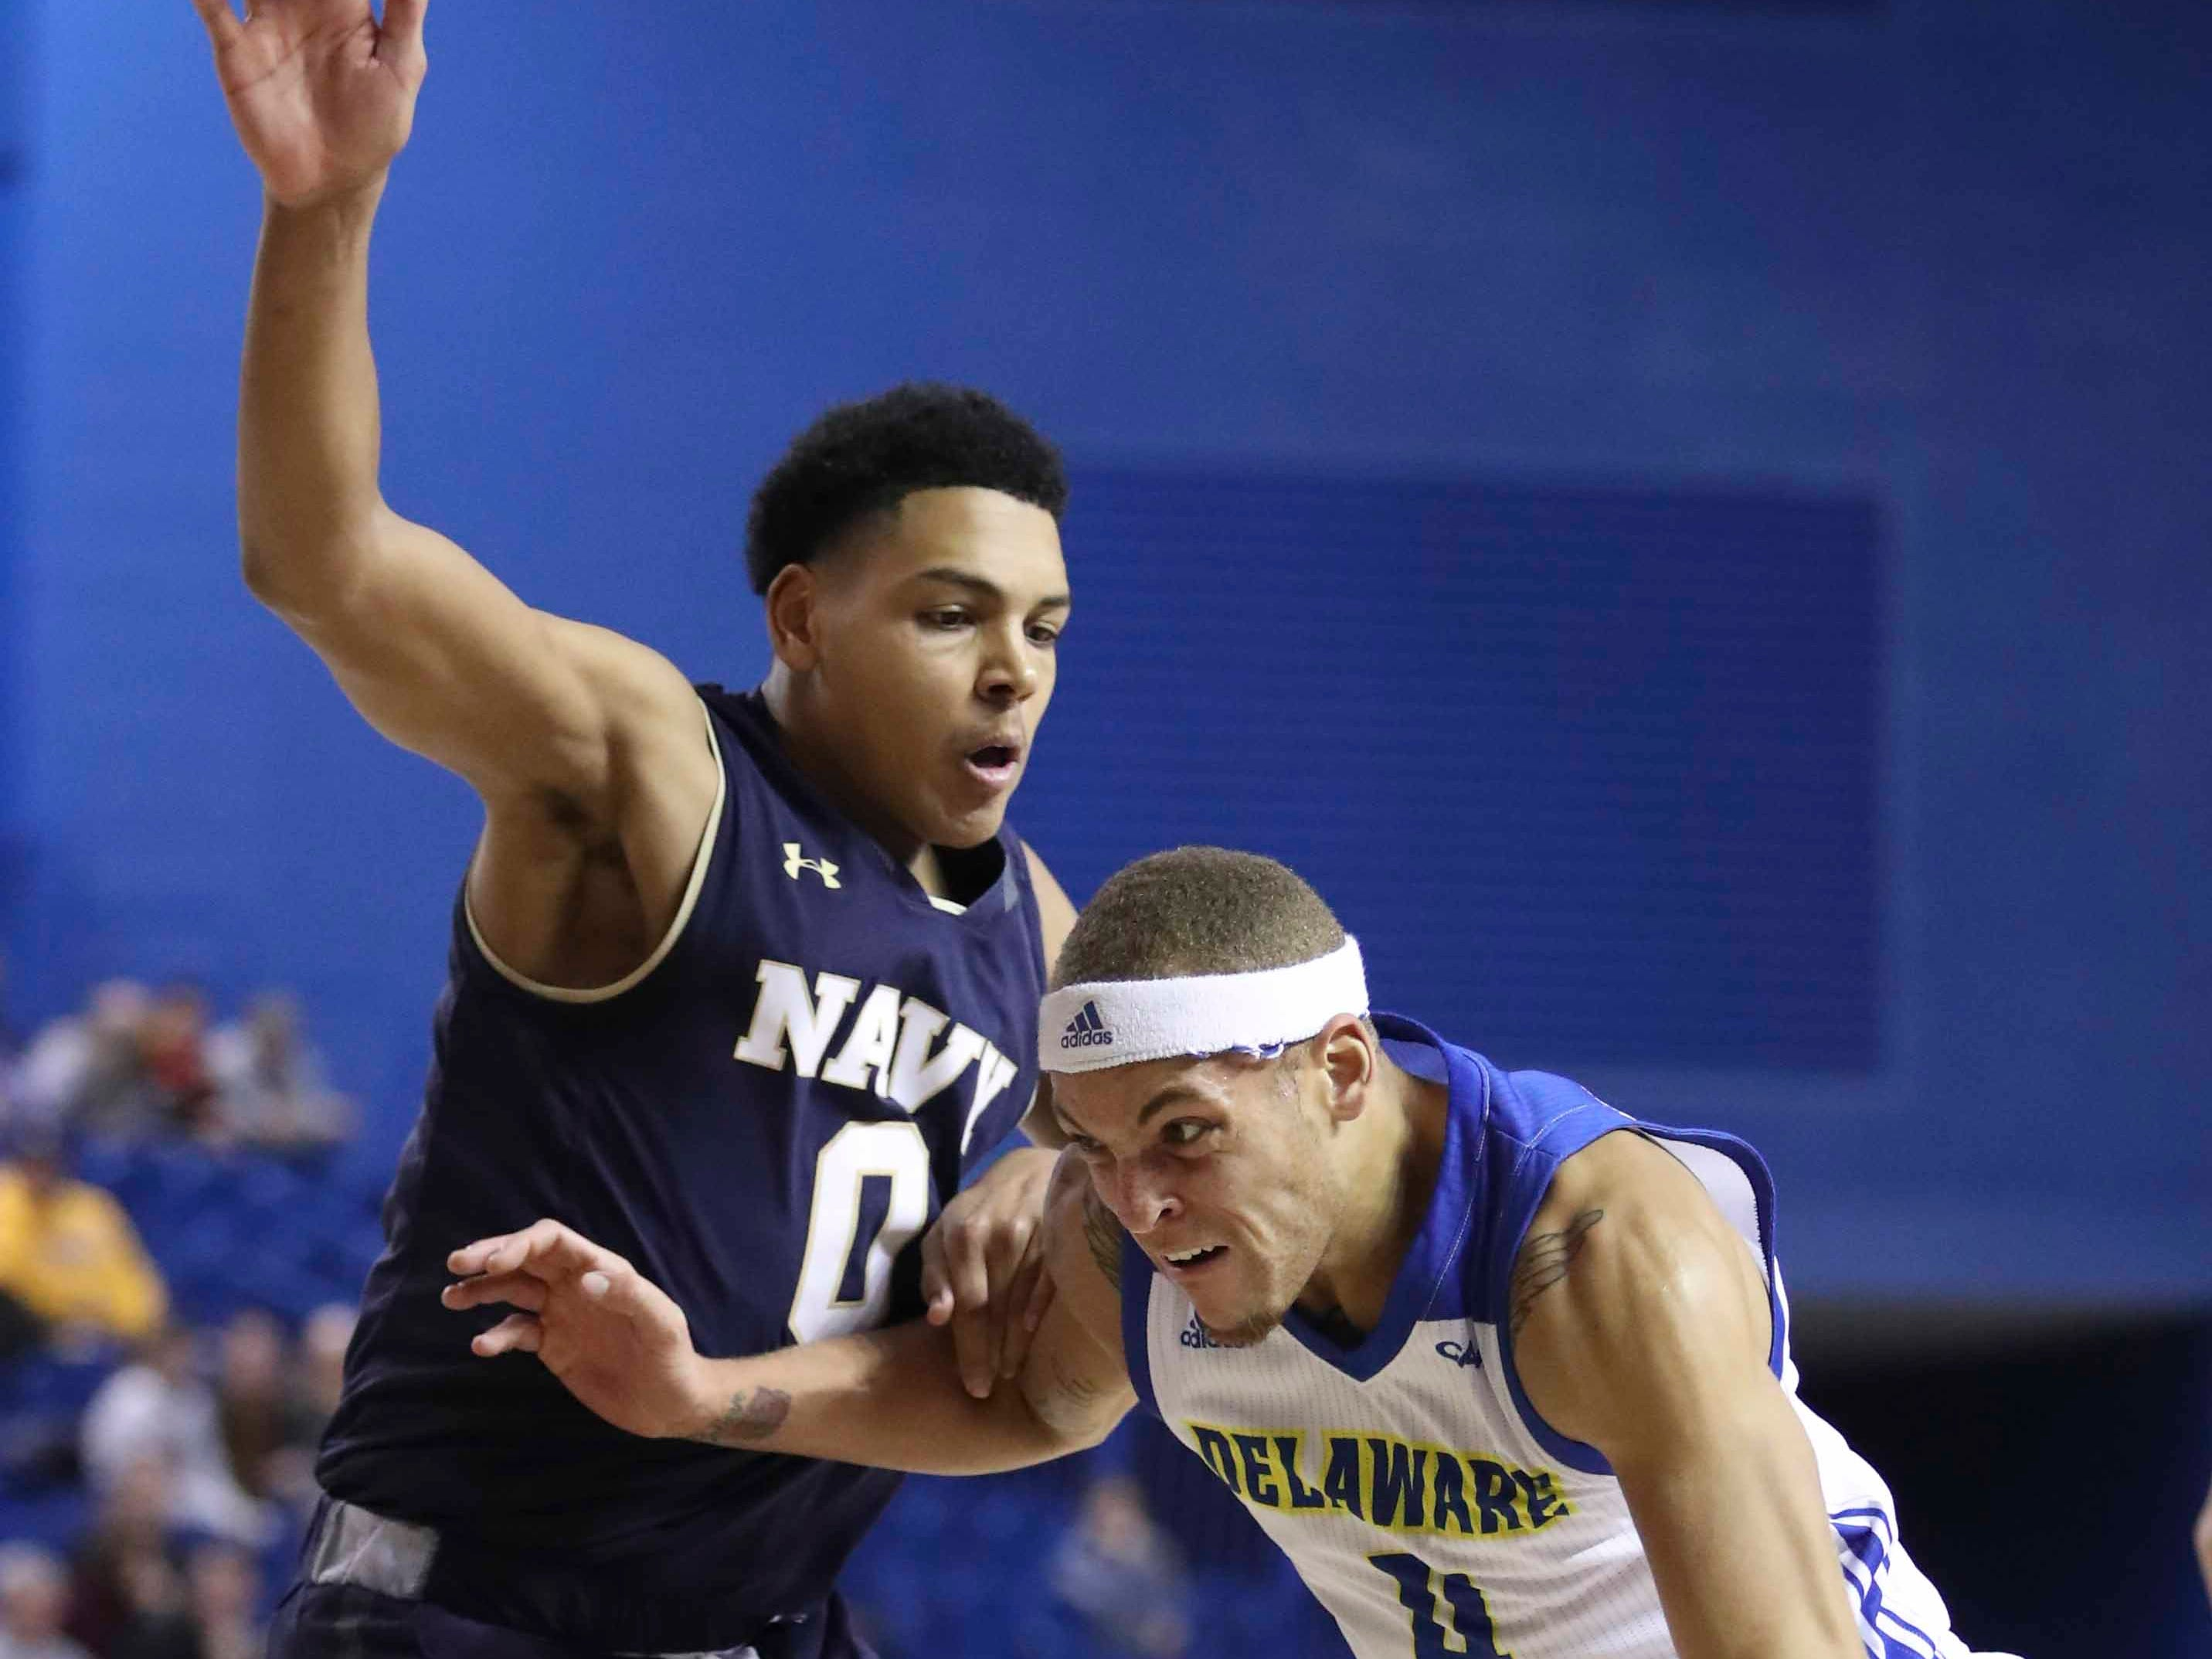 Navy's Josiah Strong (left) tries to slow Delaware's Darian Bryant in the first half at the Bob Carpenter Center Wednesday.